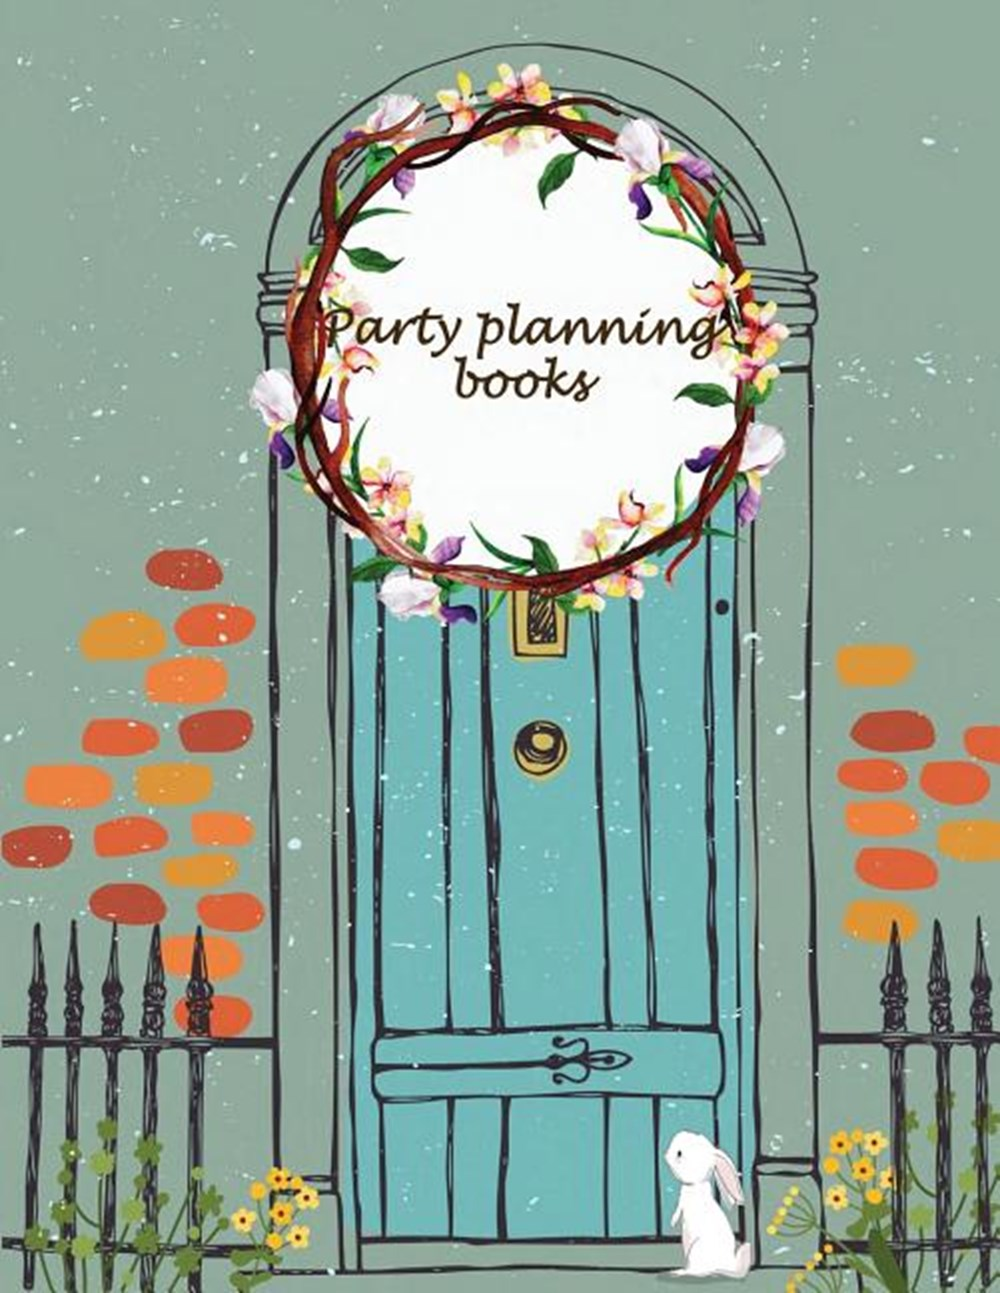 "Party planning books Happy plan, event planner 120 pages Large Print 8.5"" x 11"""